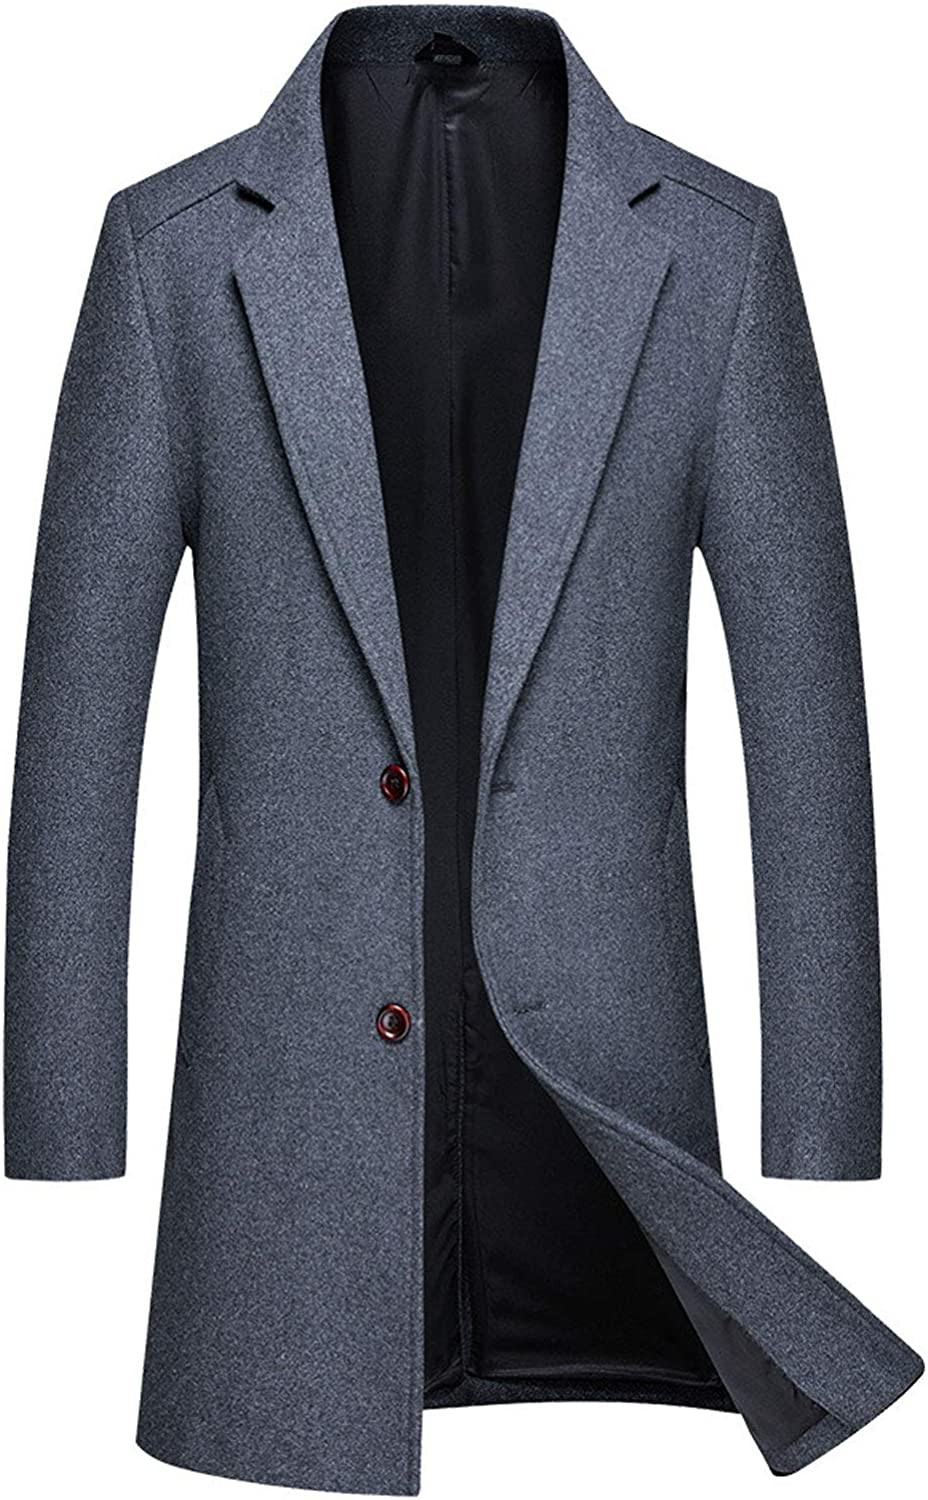 ebossy Men's Formal 2 Button Notched Collar Slim Wool Blend Top Coat